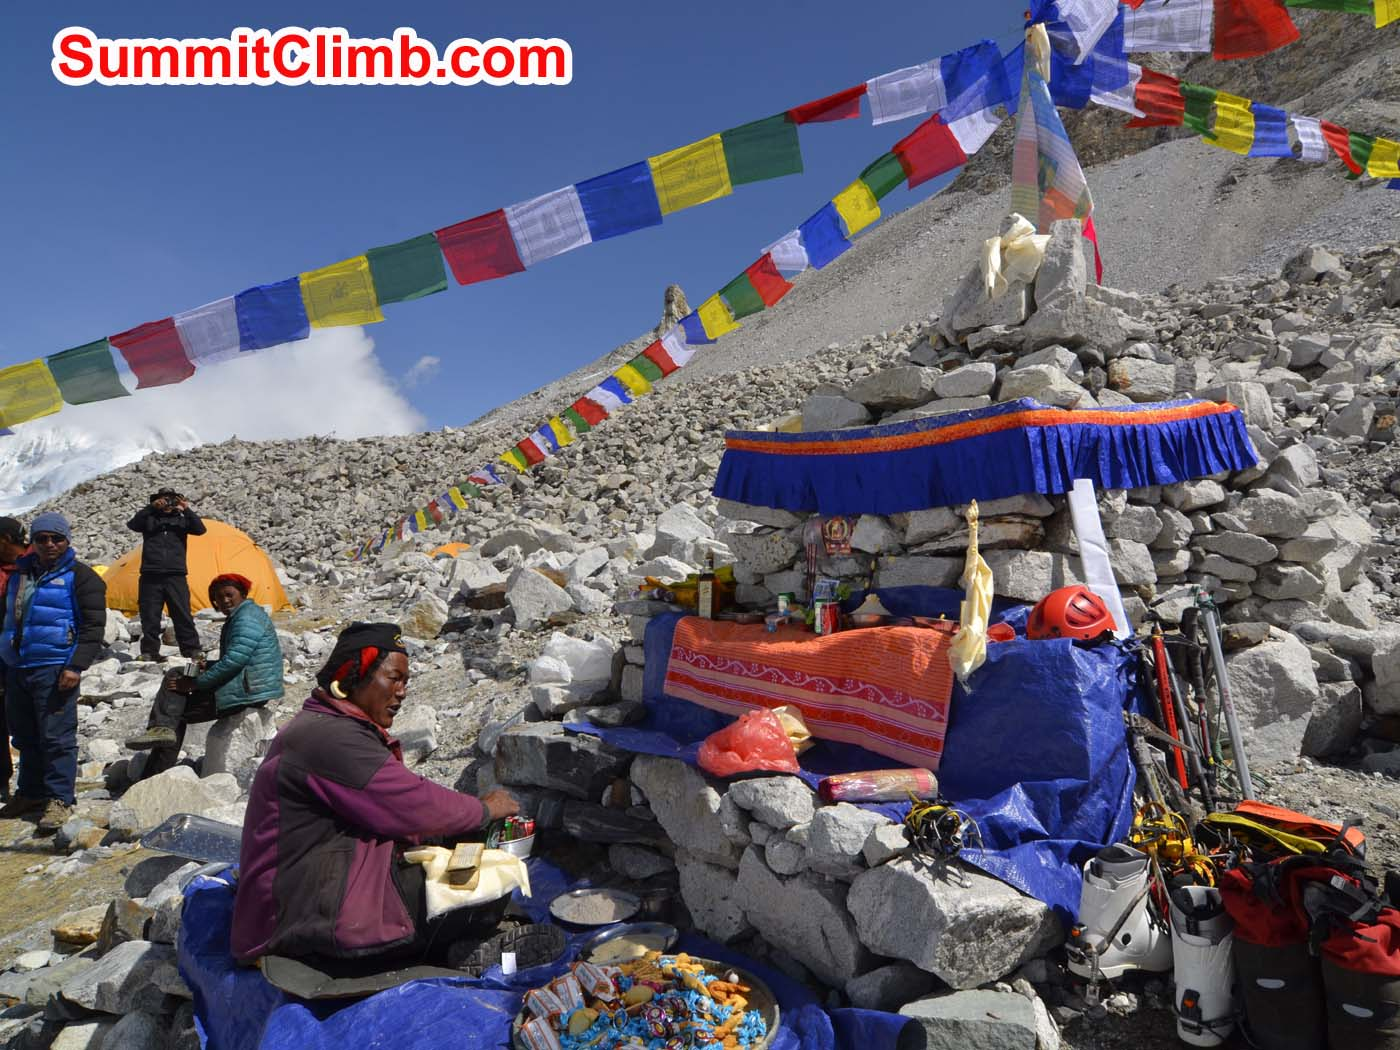 Tibetan Lama leads prayer ceremony at basecamp. Dmitri Nichiporov photo